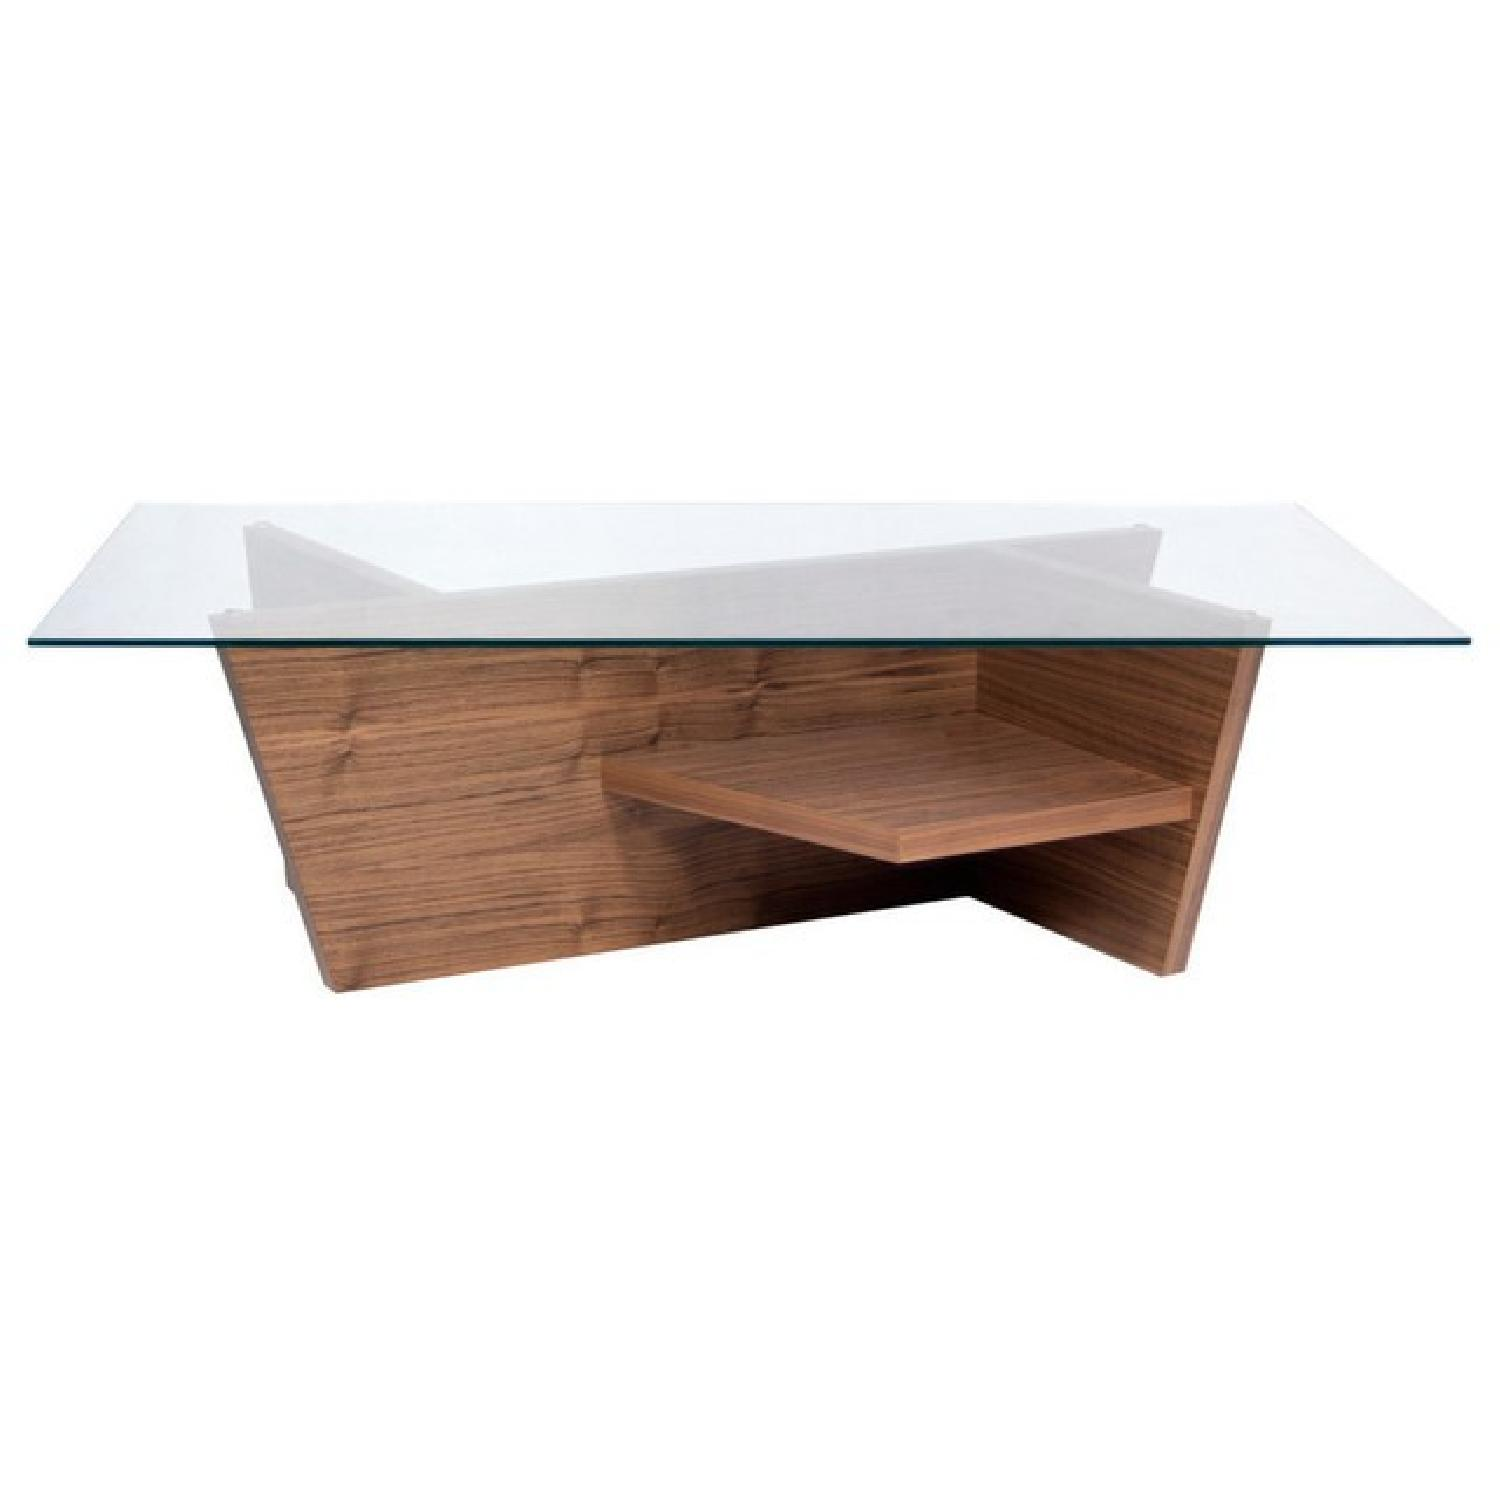 ABC Carpet & Home Oliva Glass Top/Walnut Base Coffee Table